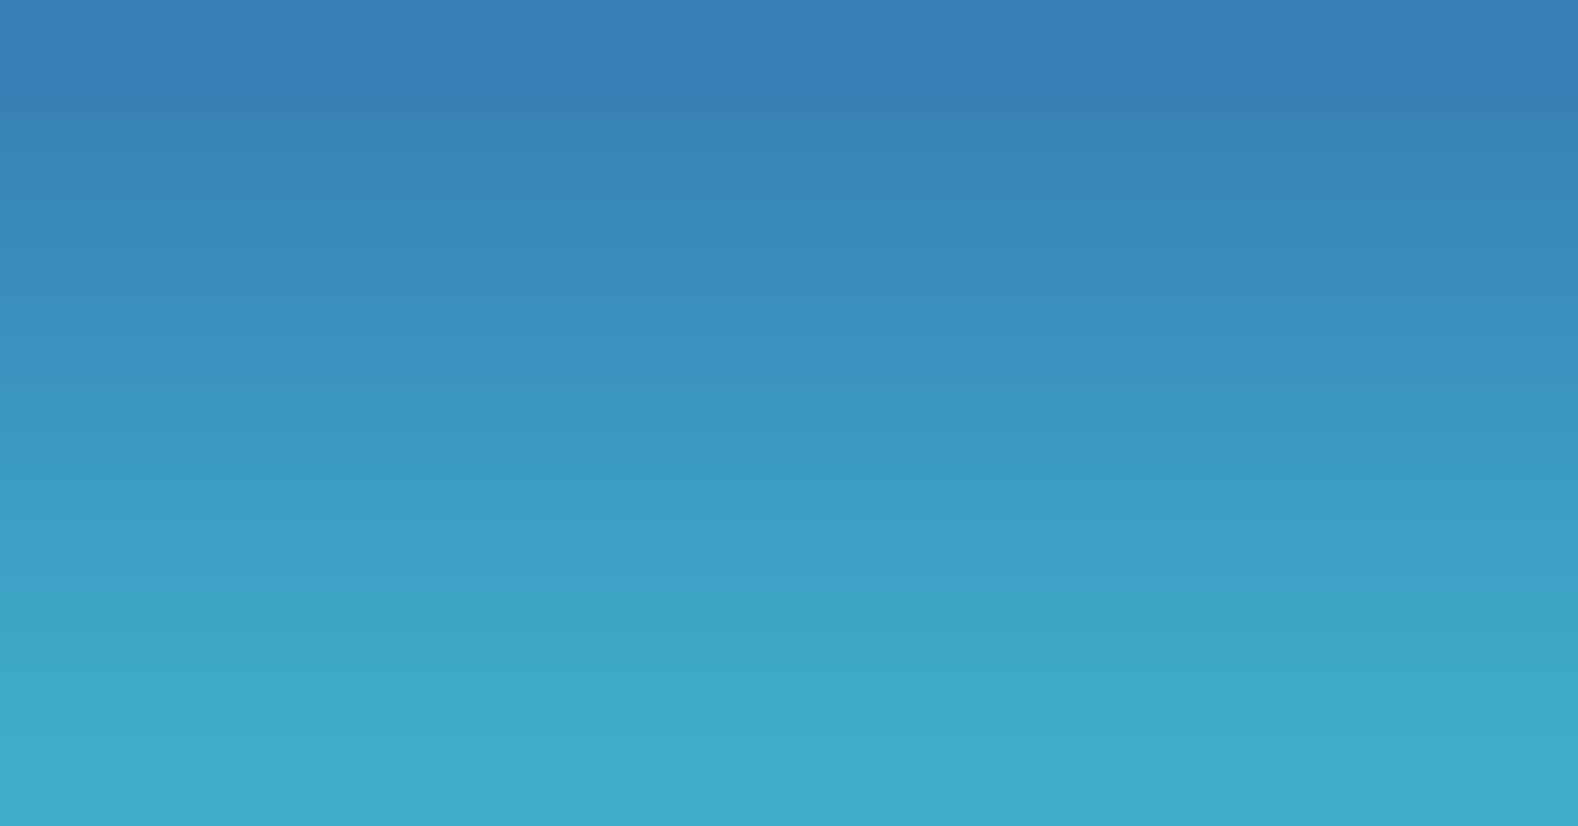 Light Blue Gradient UI Gradient